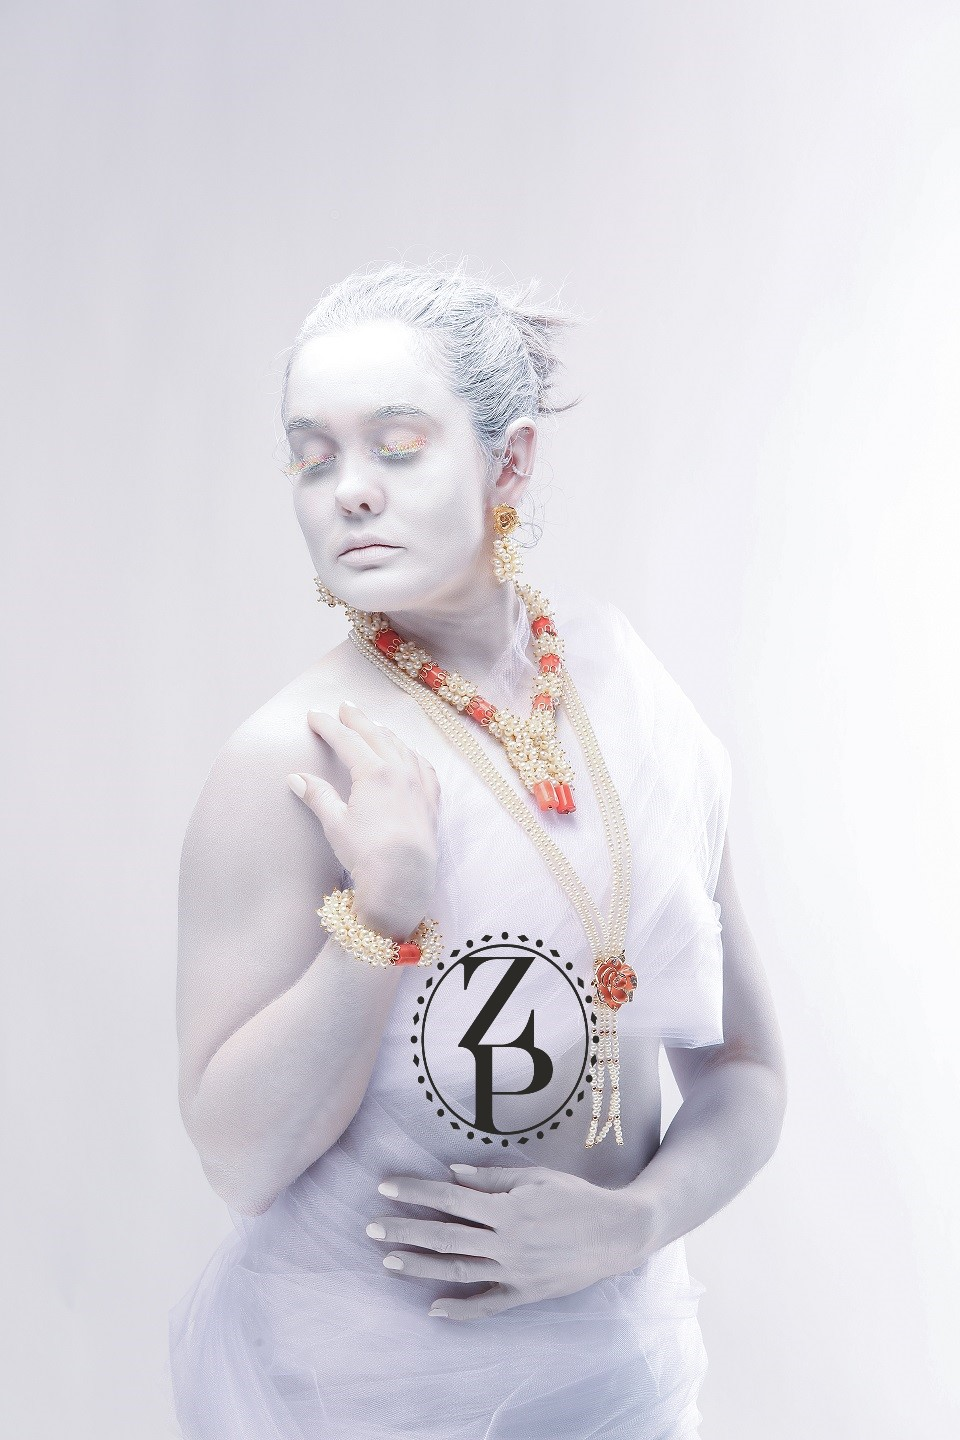 body-paint-editorial-photoshoot-model-coral-nigerian-jewelry-zuri-perle.jpg